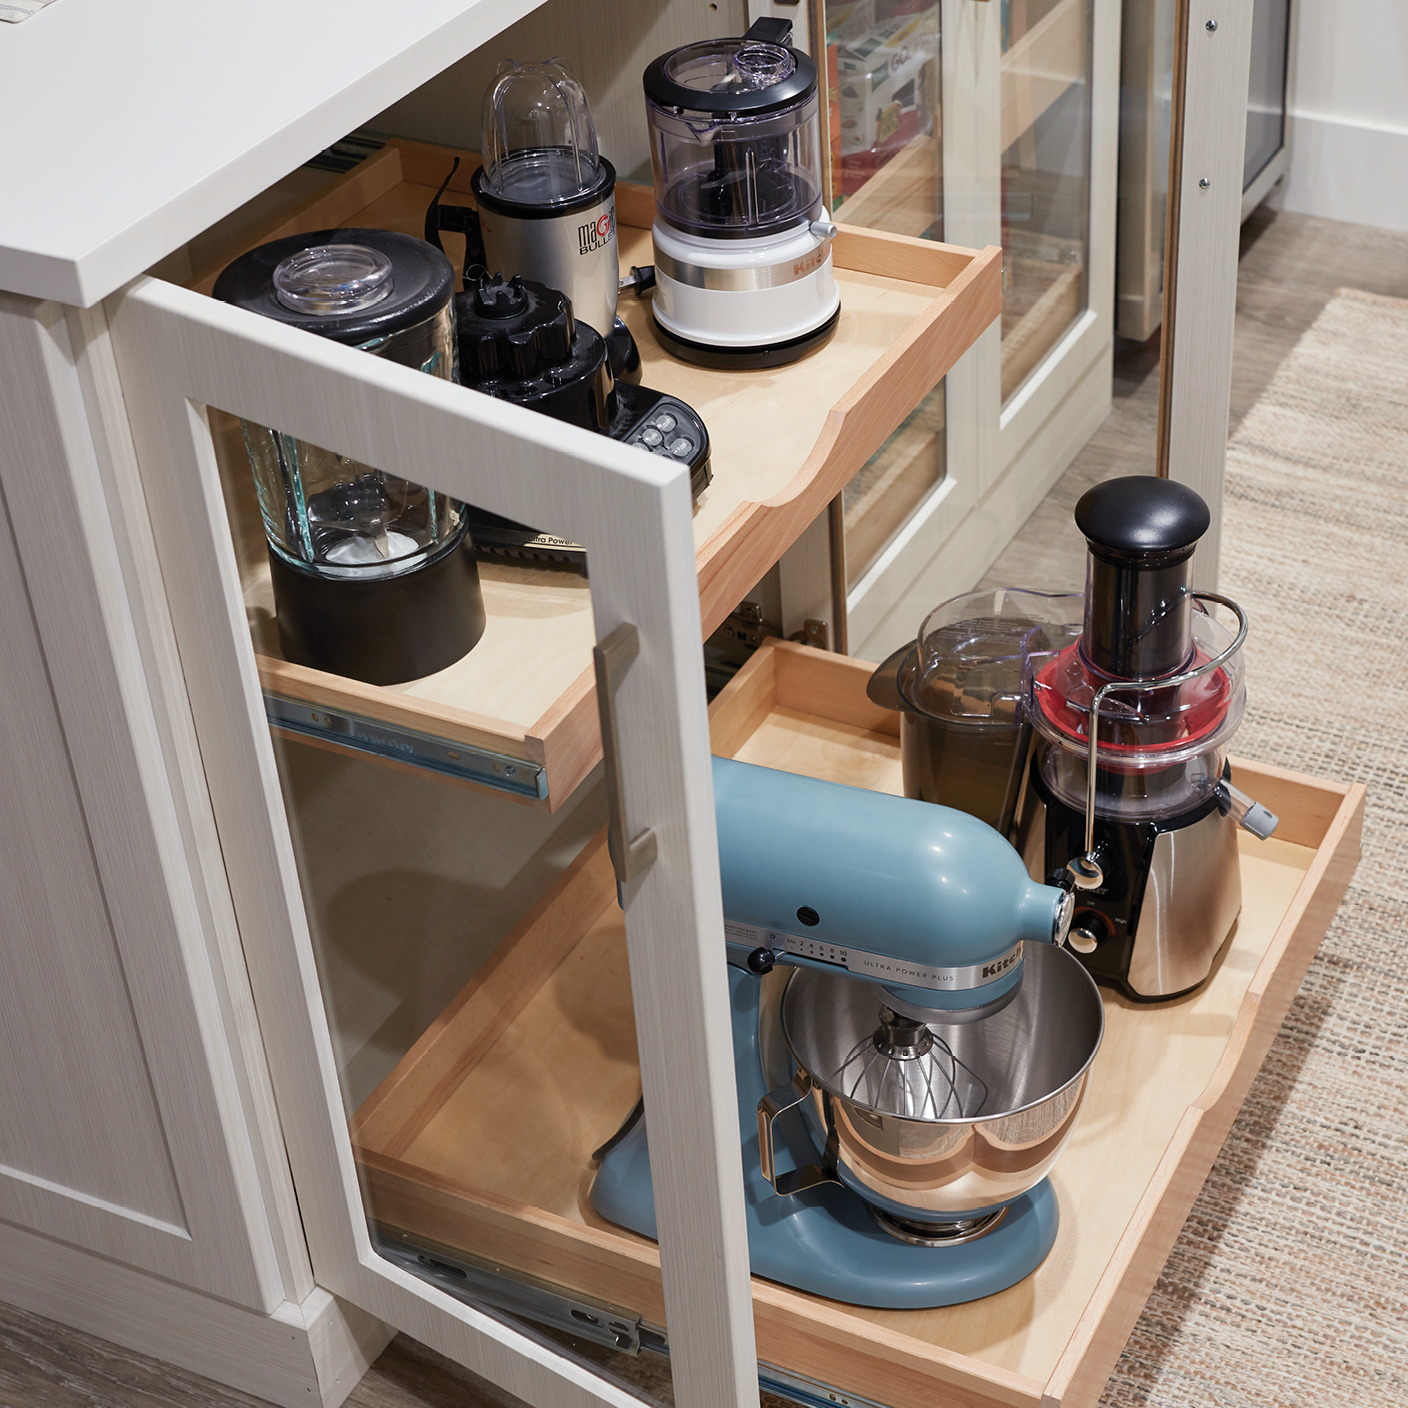 Pull out appliance storage for walk-in pantry from Inspired Closets